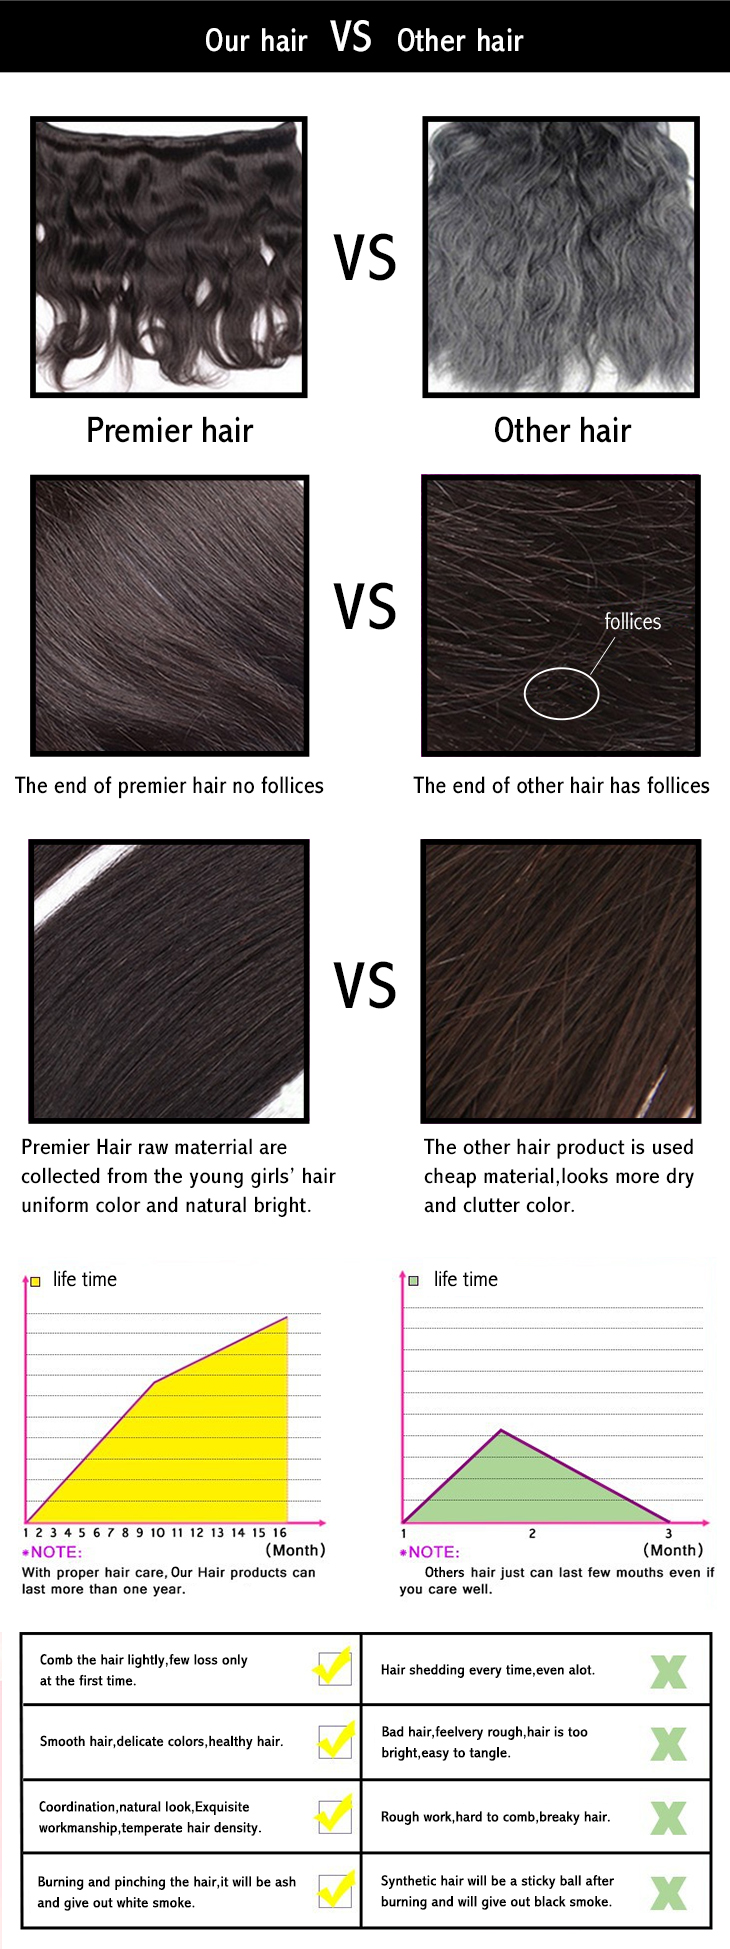 comparison of Premier hairs and others